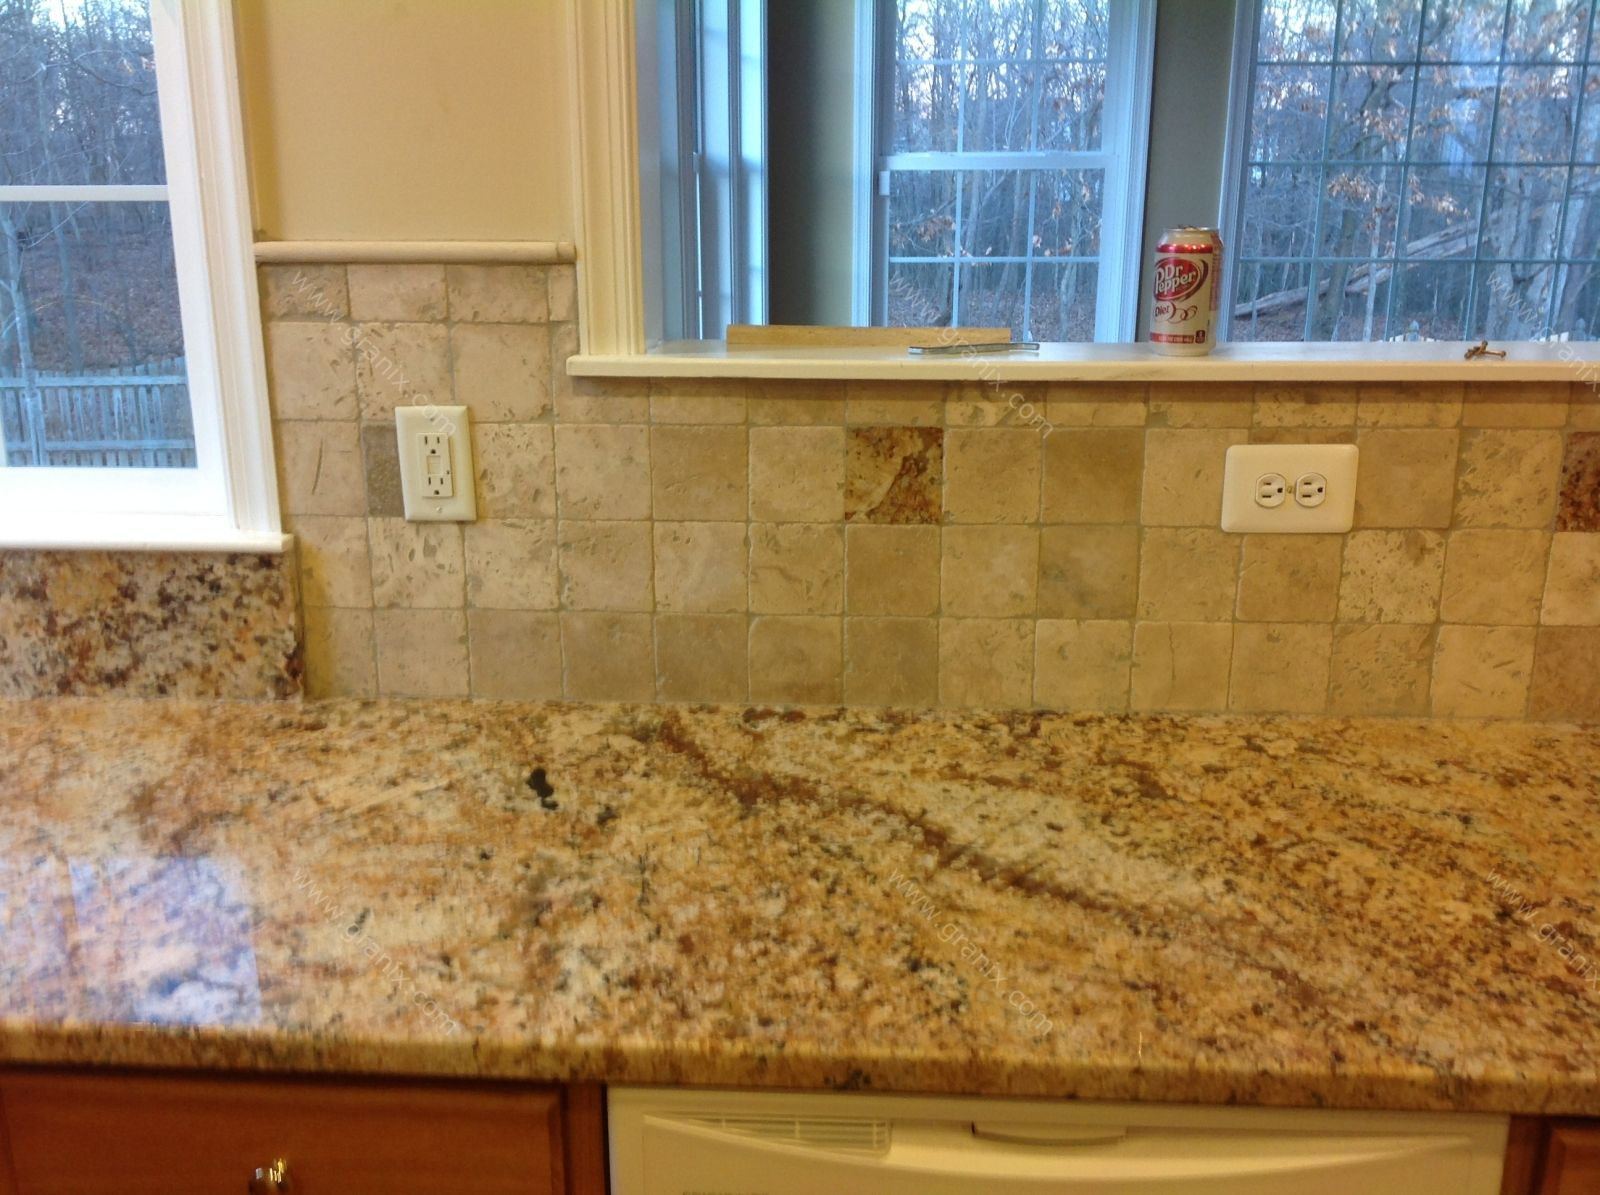 Kitchen Backsplash With Granite Countertops kitchen kitchen backsplash ideas black granite countertops small